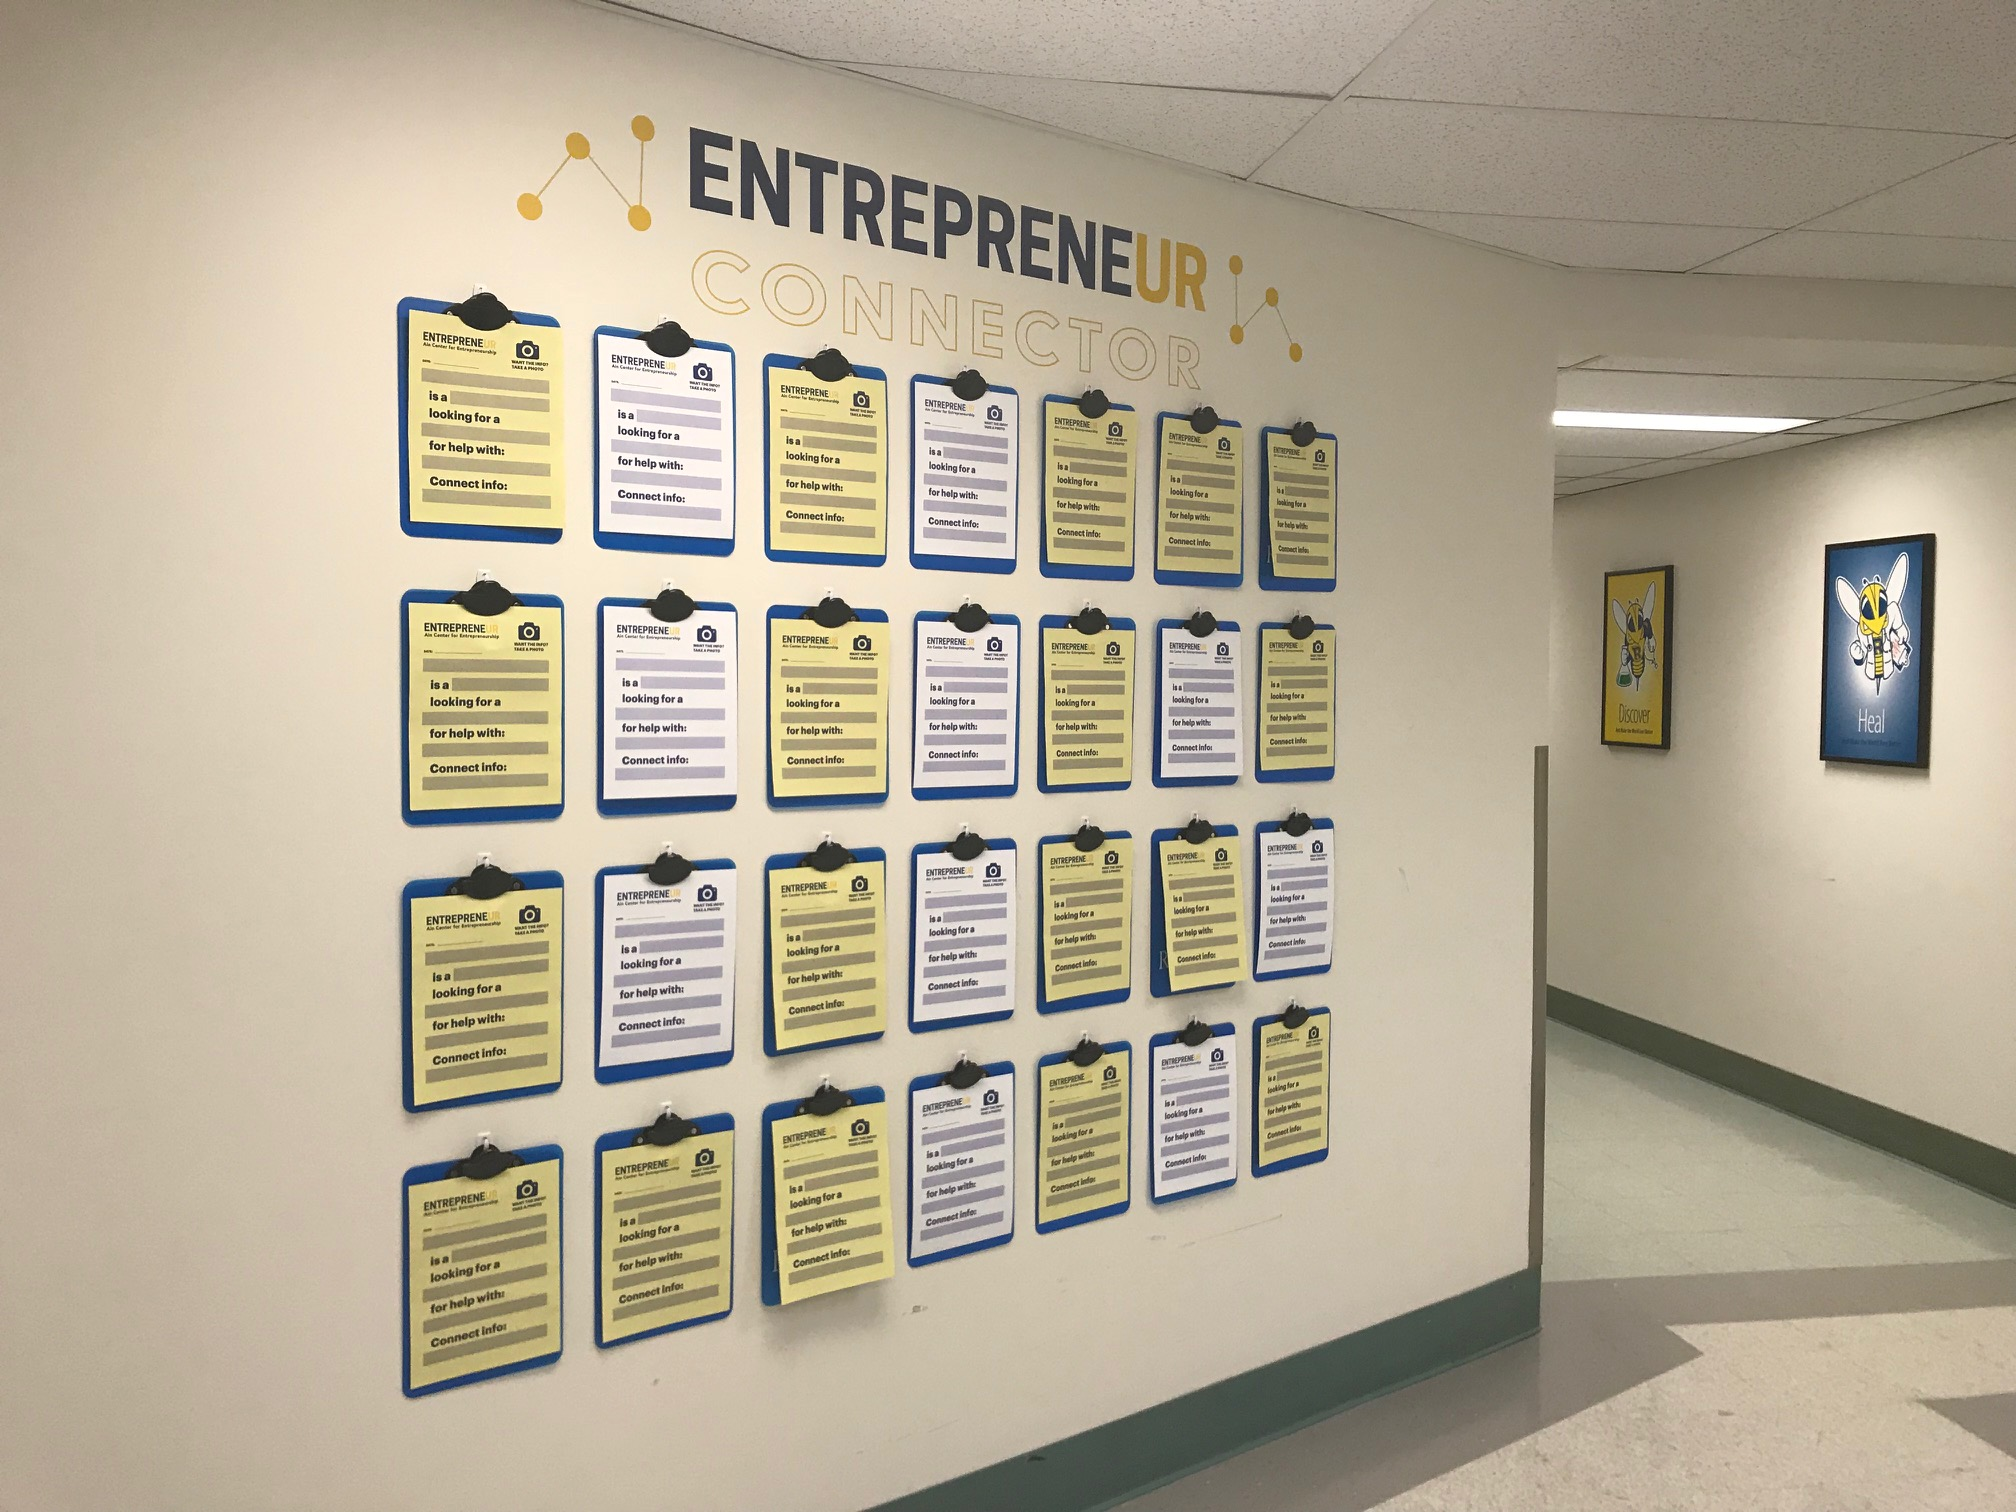 Ain Center Entrepreneur Connector Wall